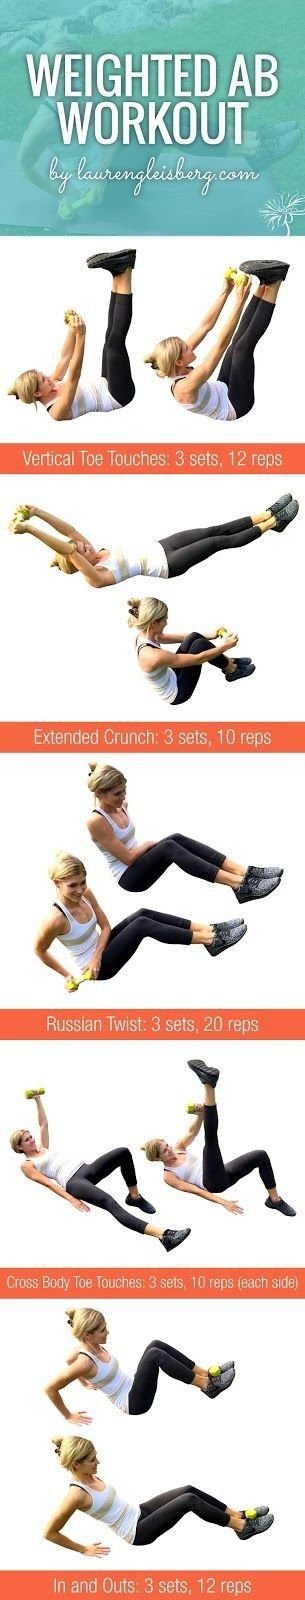 waist slimming exercises for women 165 24 1 nicole lindsey workouts